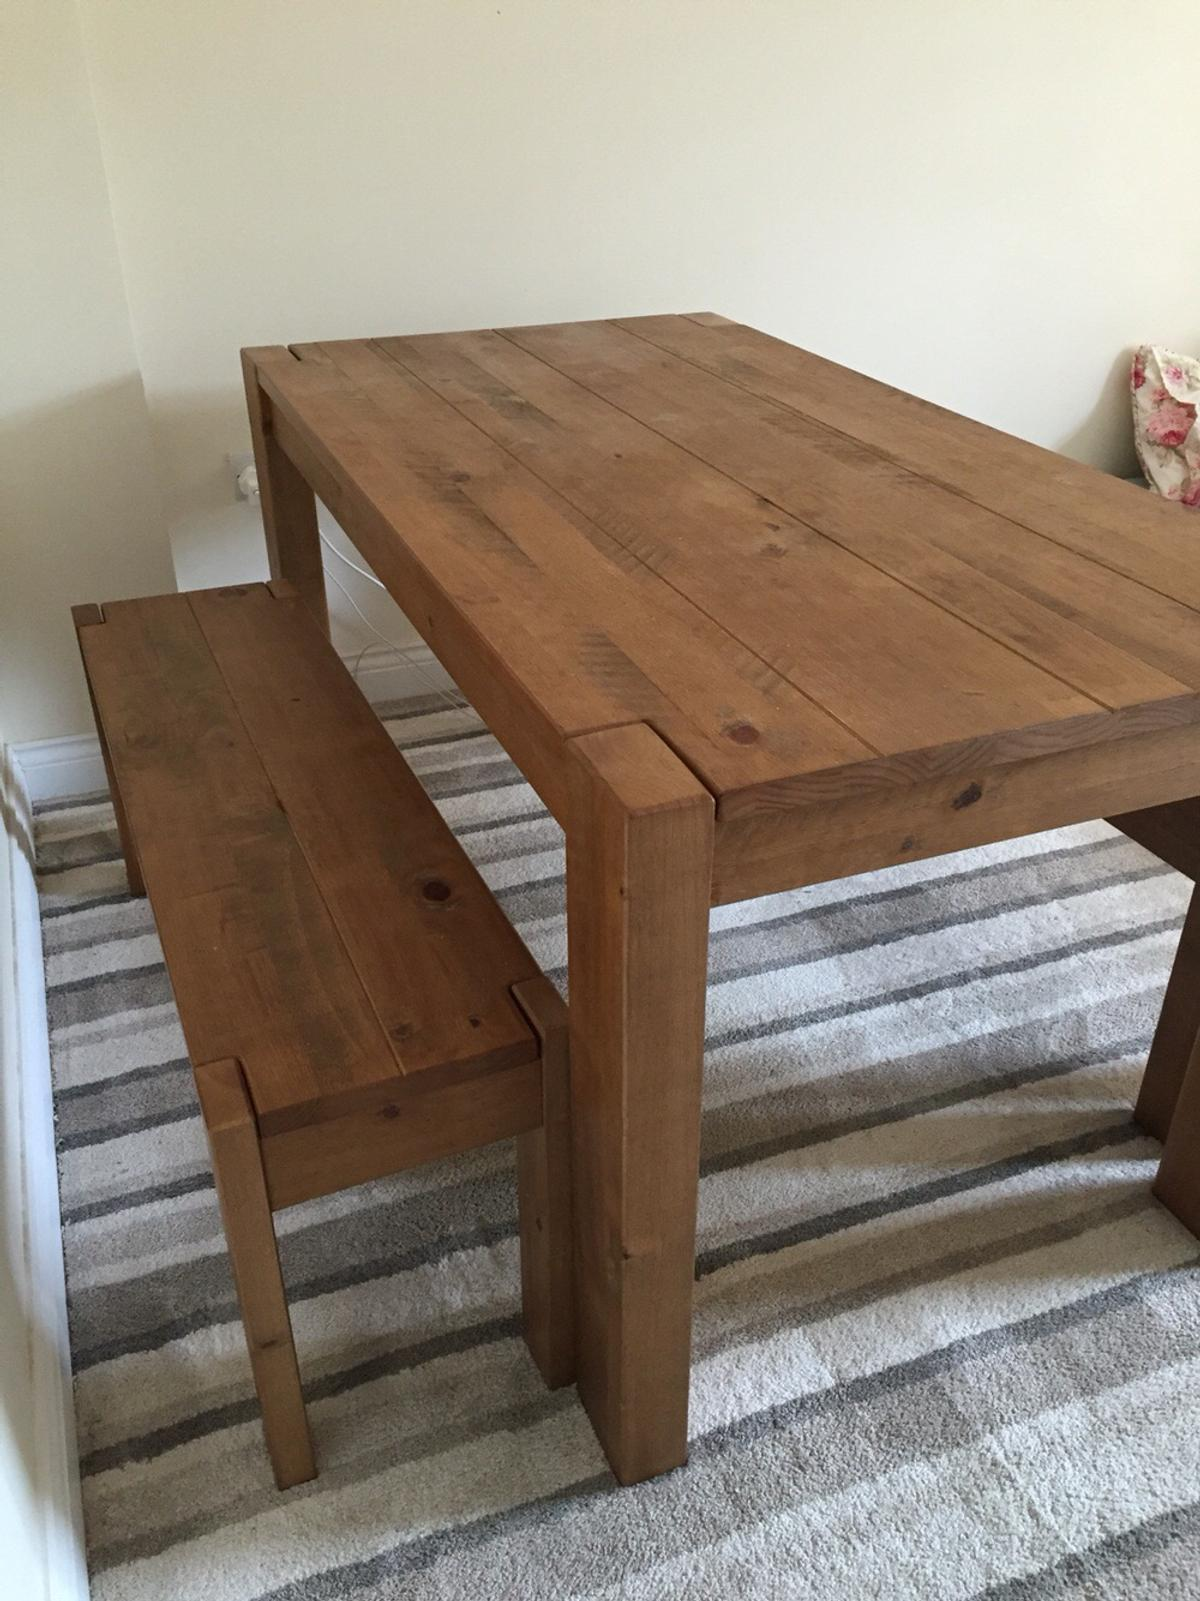 NEXT HARTFORD KENDALL DINING TABLE BENCH SET In LE8 Blaby For